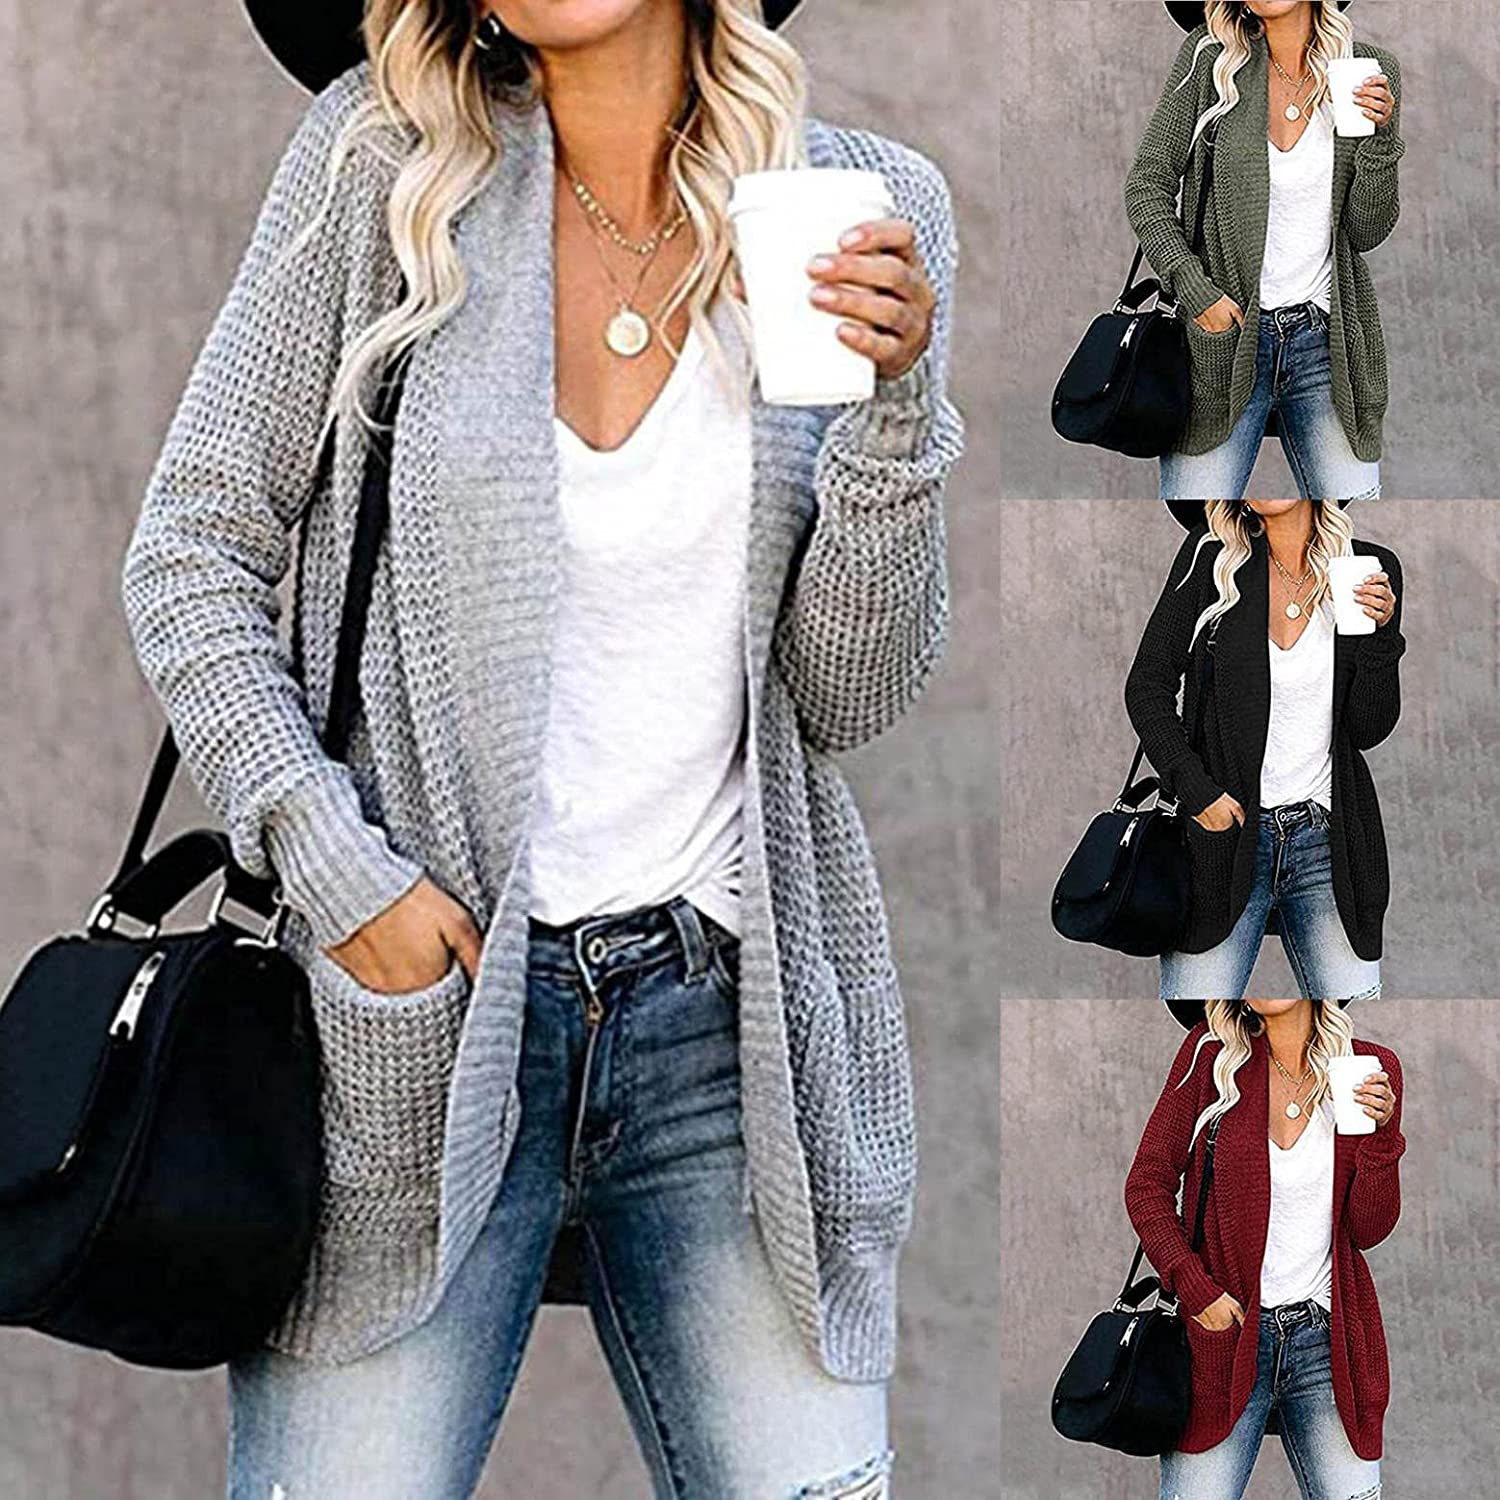 AODONG Cardigan for Women Lightweight Cable Knitted Sweaters Open Front Crochet Cardigan Long Sleeve Coat Tops